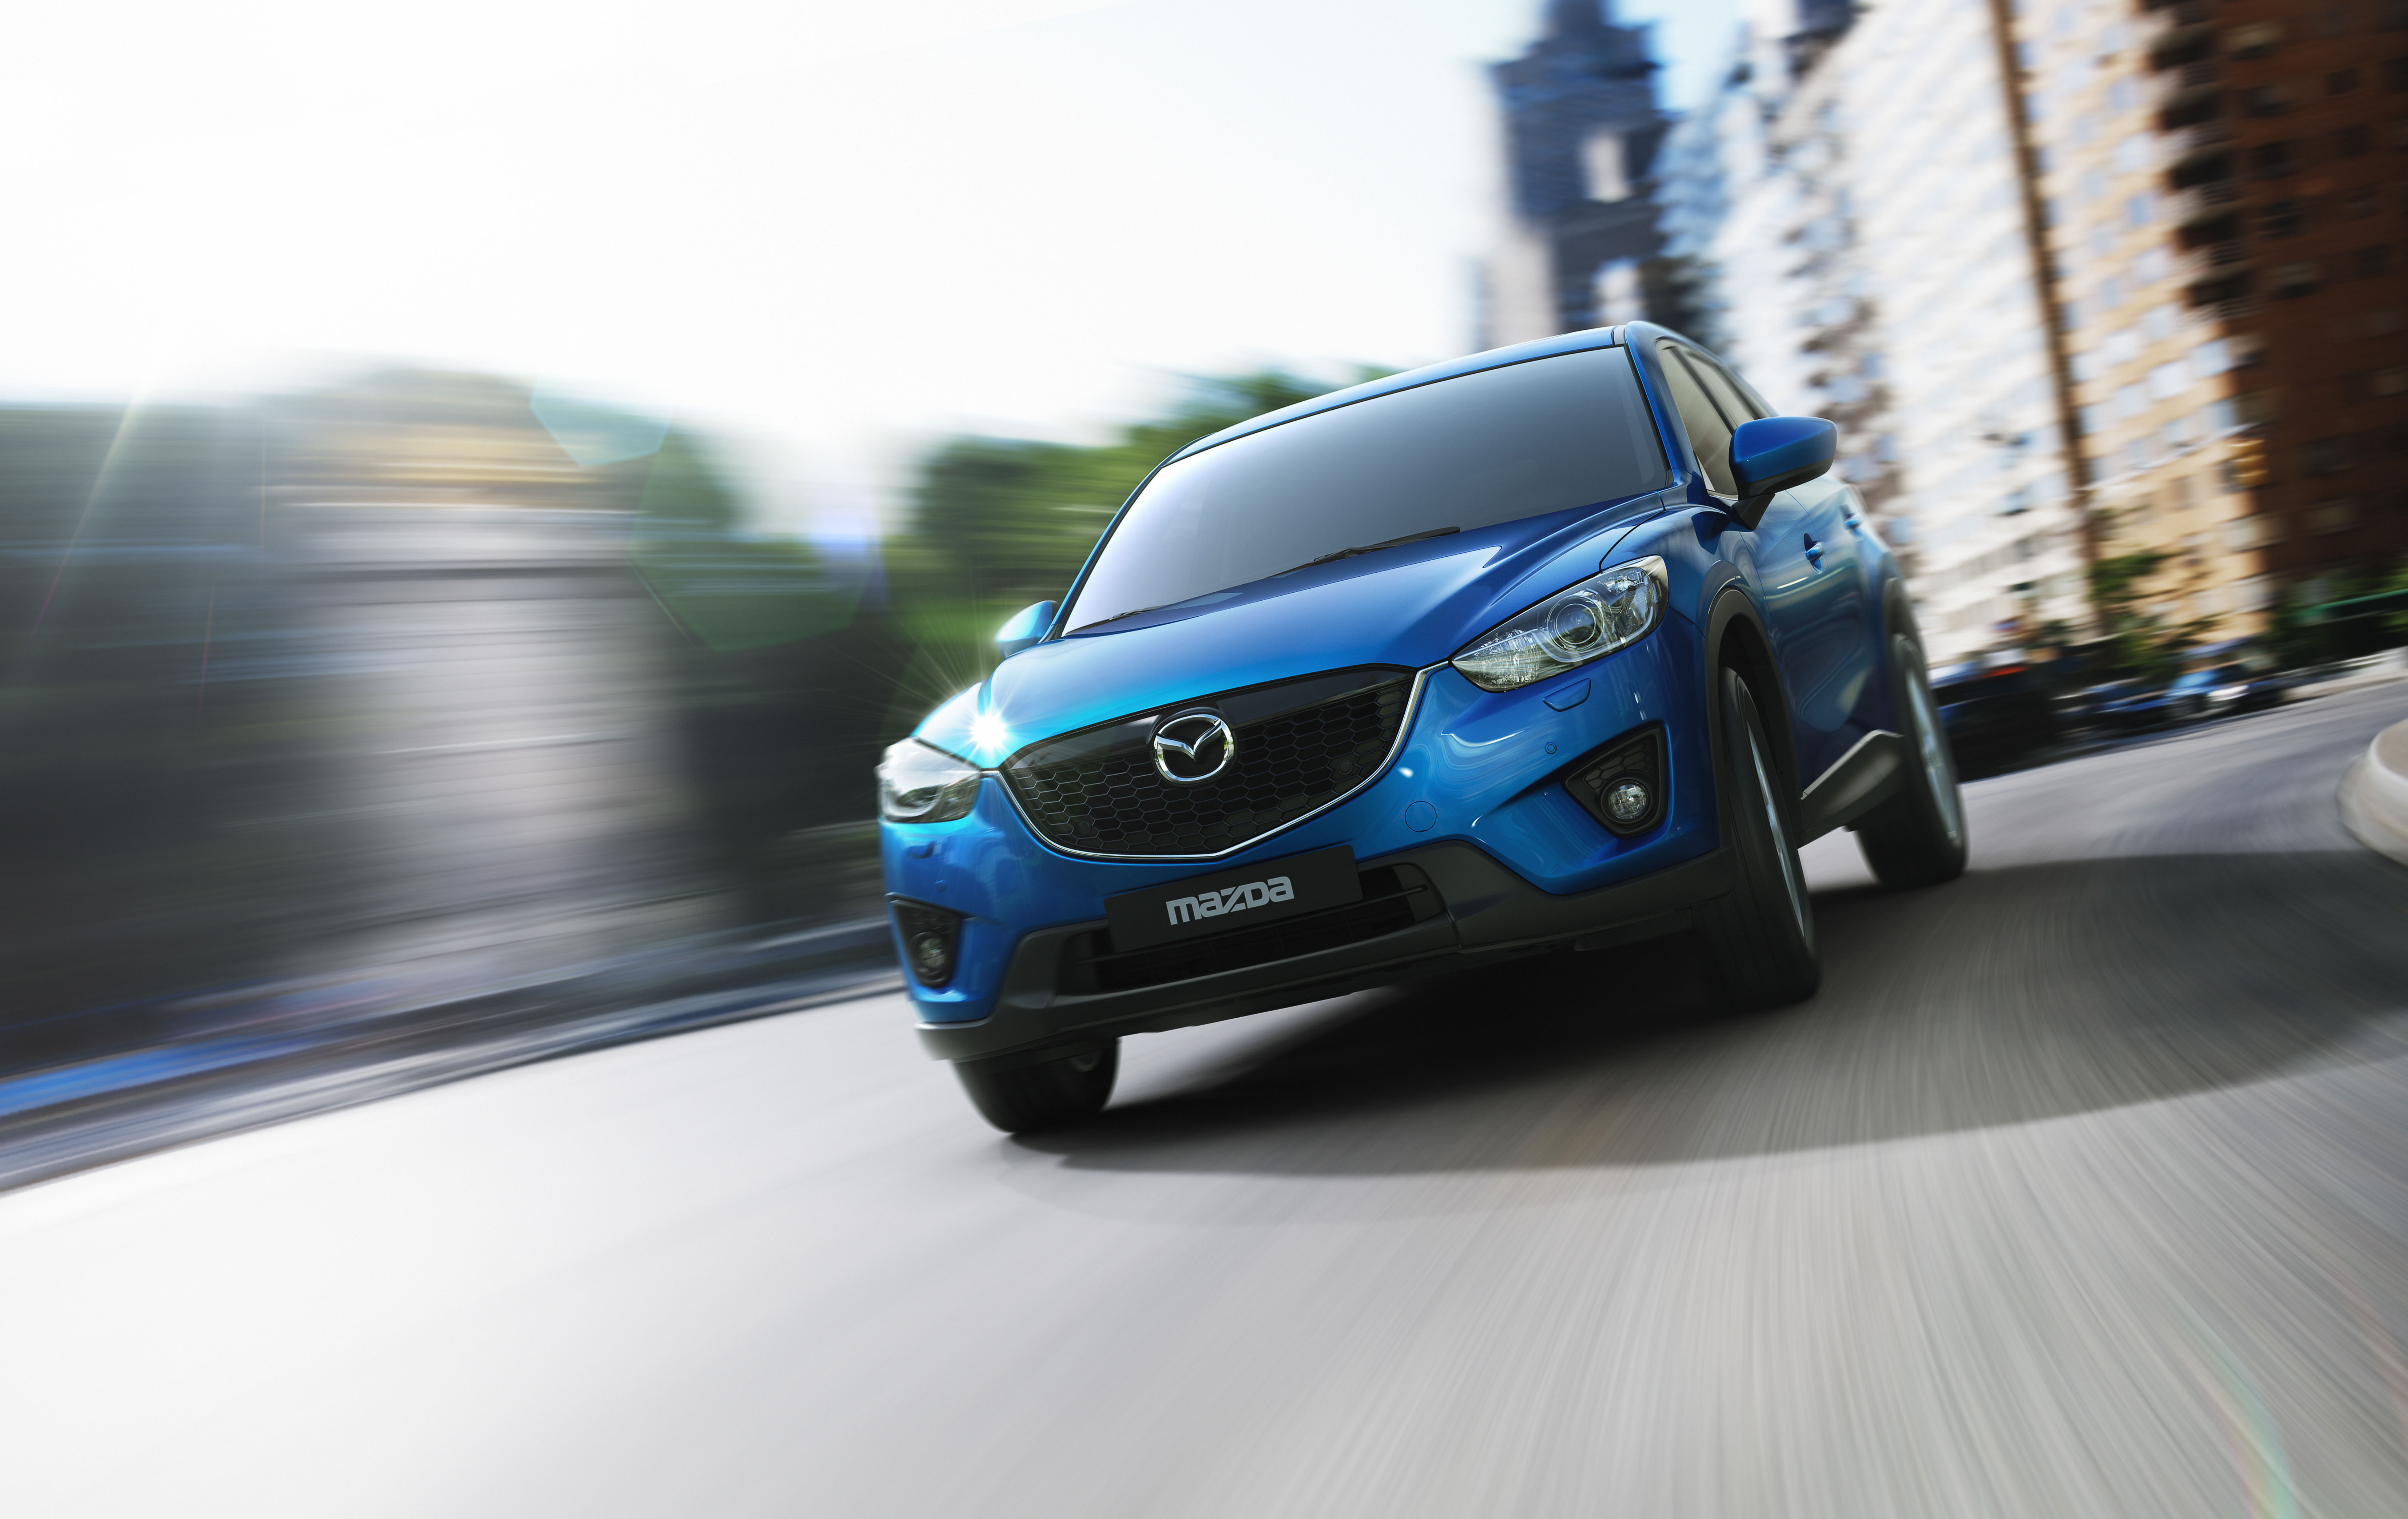 spirit with mg crossover mazda review gt subcompact reviews test drive cx